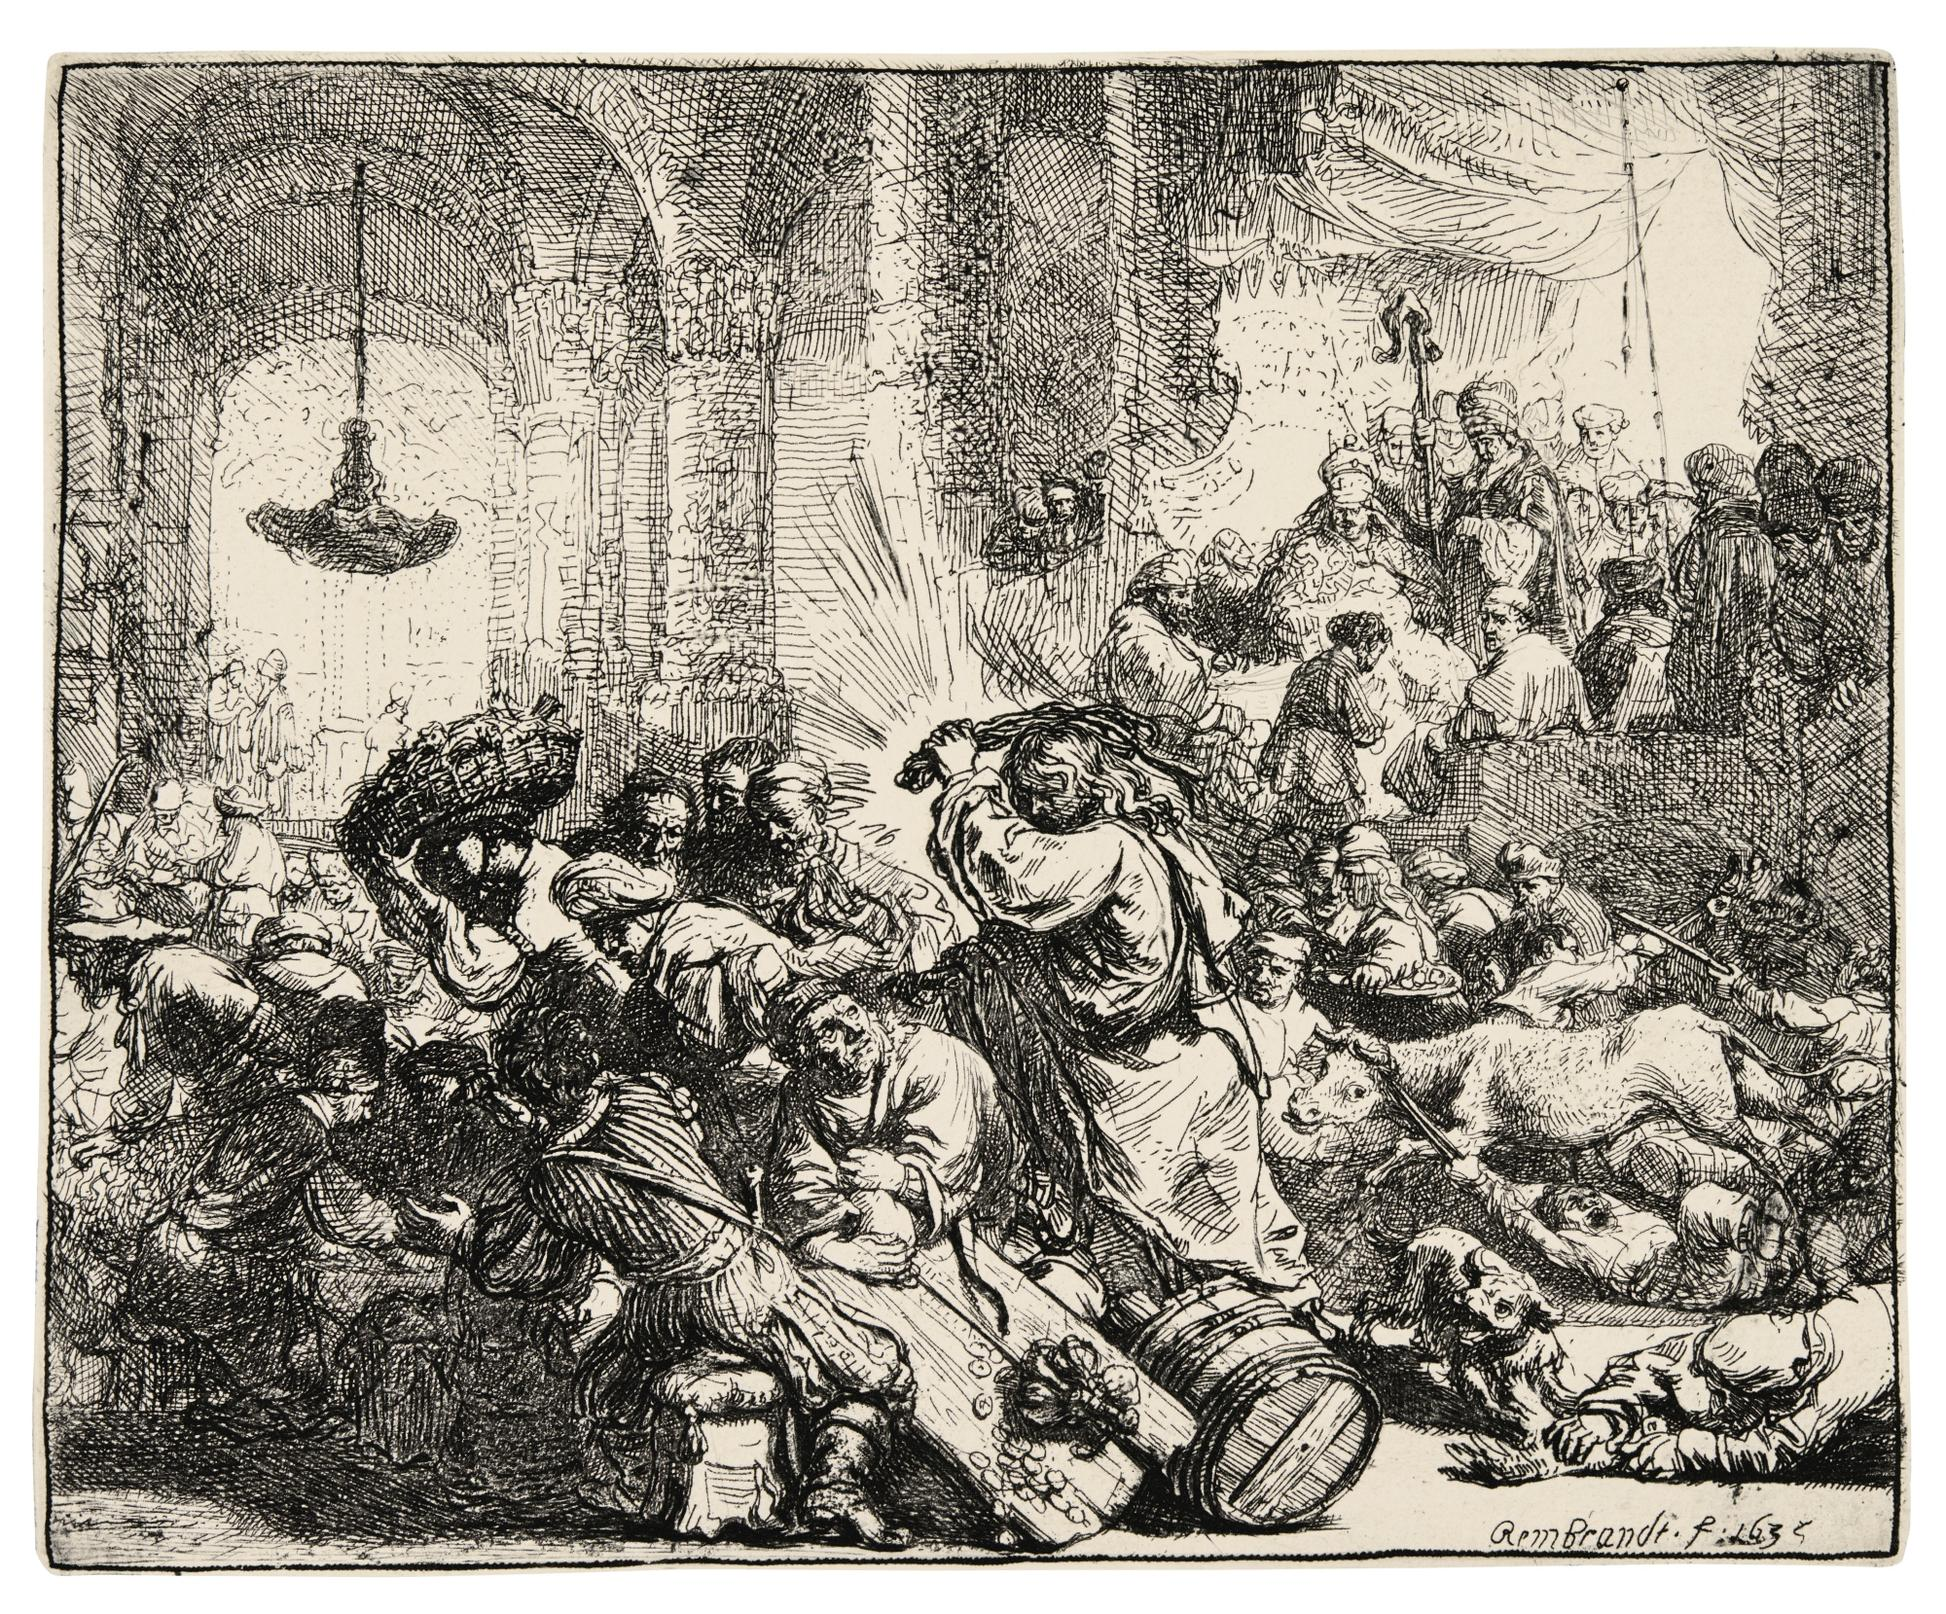 Rembrandt van Rijn-Christ Driving The Money Changers From The Temple (B., Holl. 69; New Holl. 139; H. 126)-1635